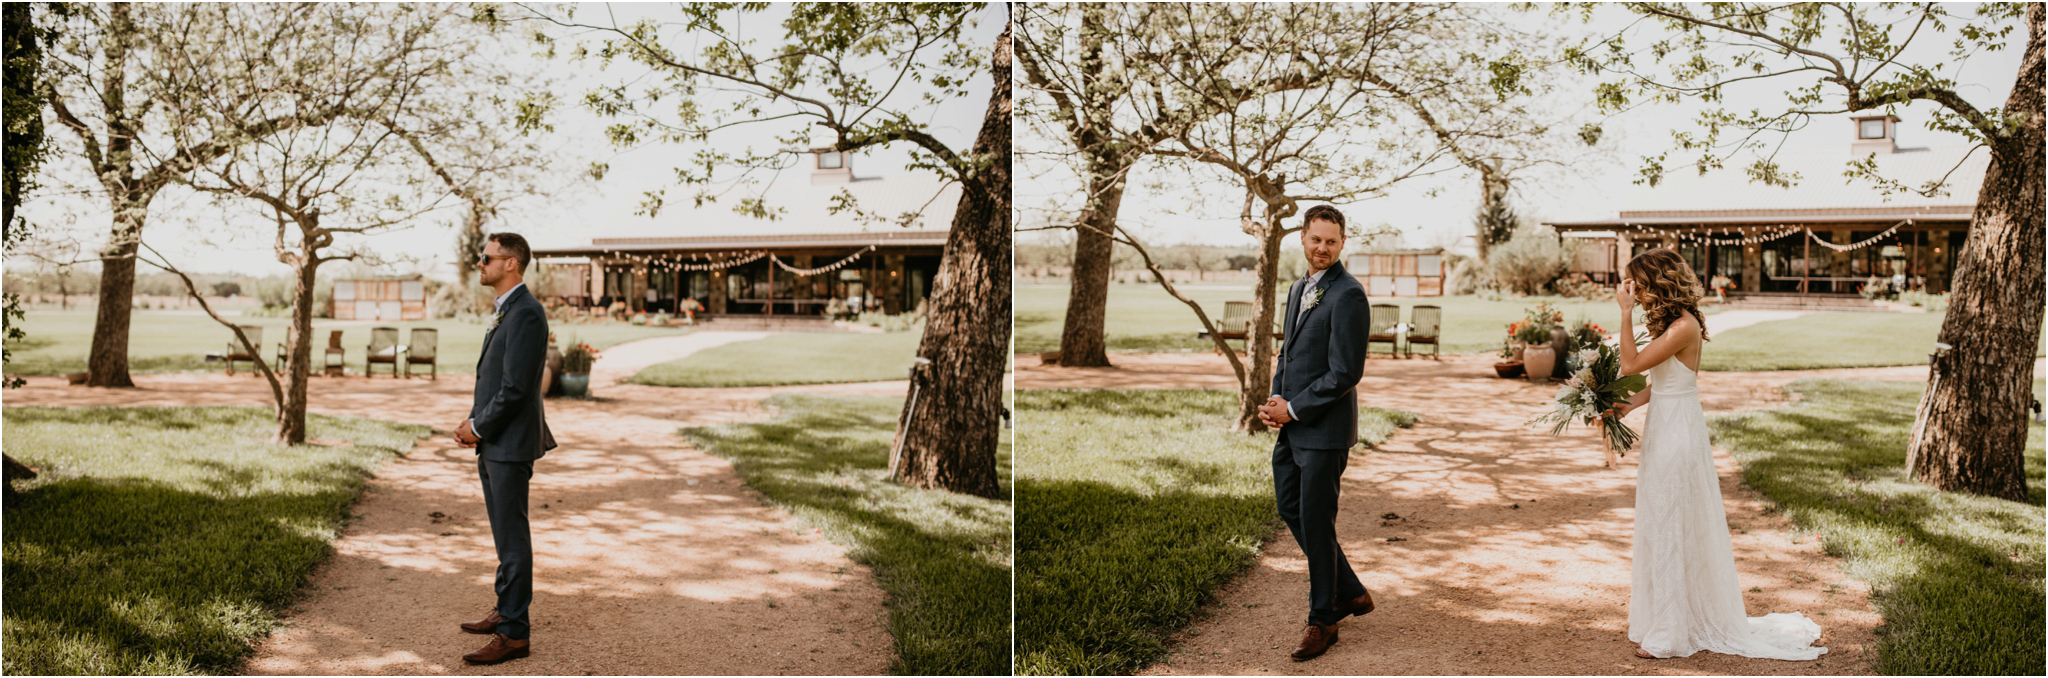 jillian-and-scott-pecan-springs-ranch-texas-and-washington-wedding-photographer-031.jpg